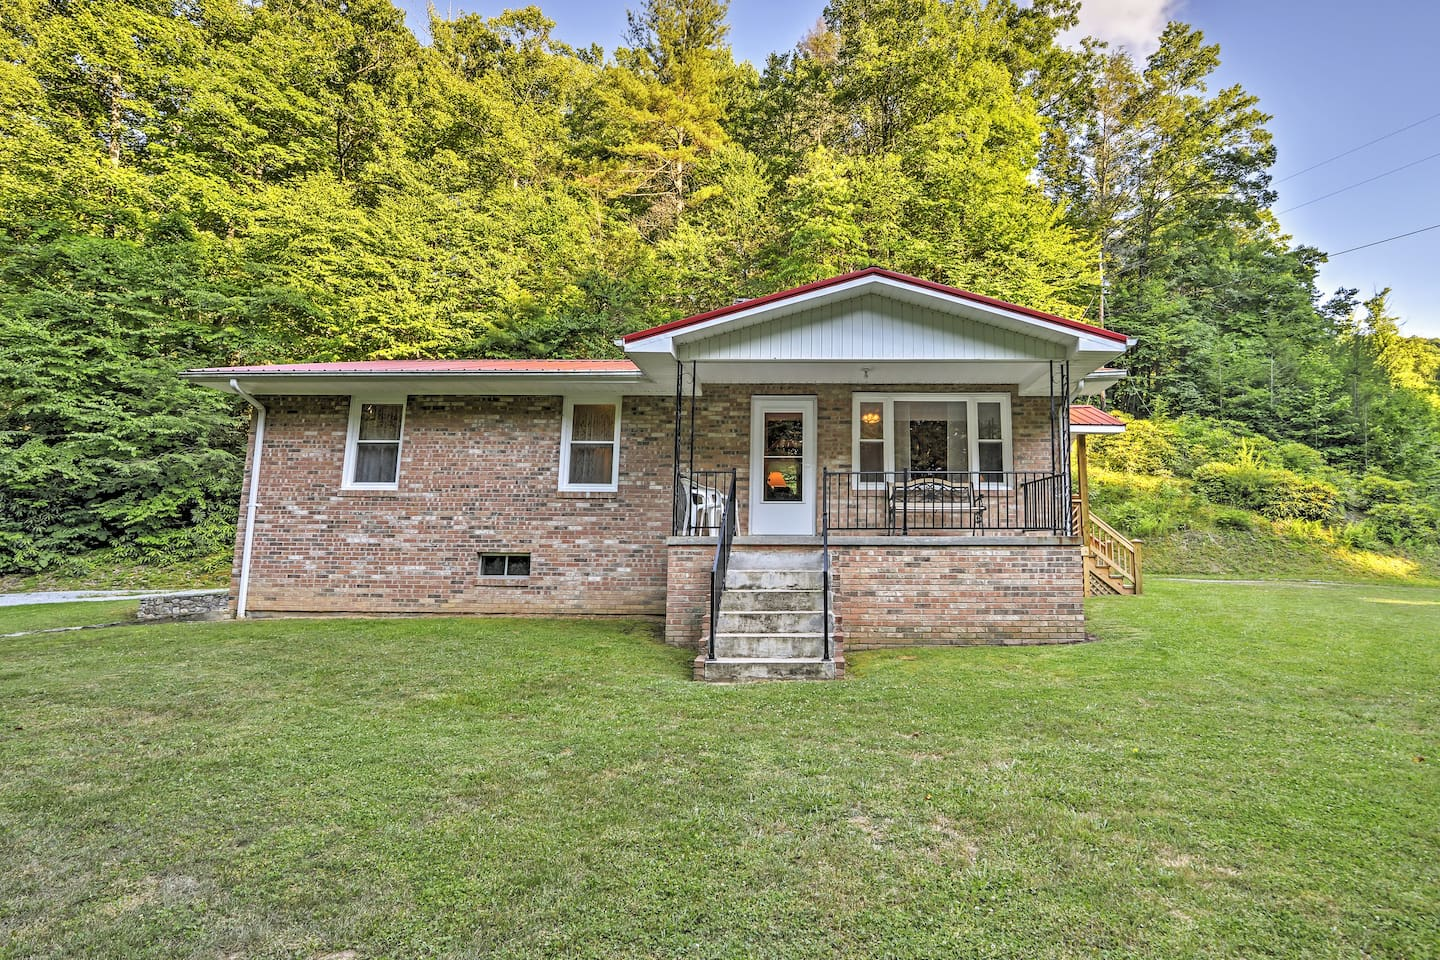 A relaxing North Carolina getaway awaits you at this 3-bedroom, 1-bath vacation rental home nestled on the outskirts of Marshall.